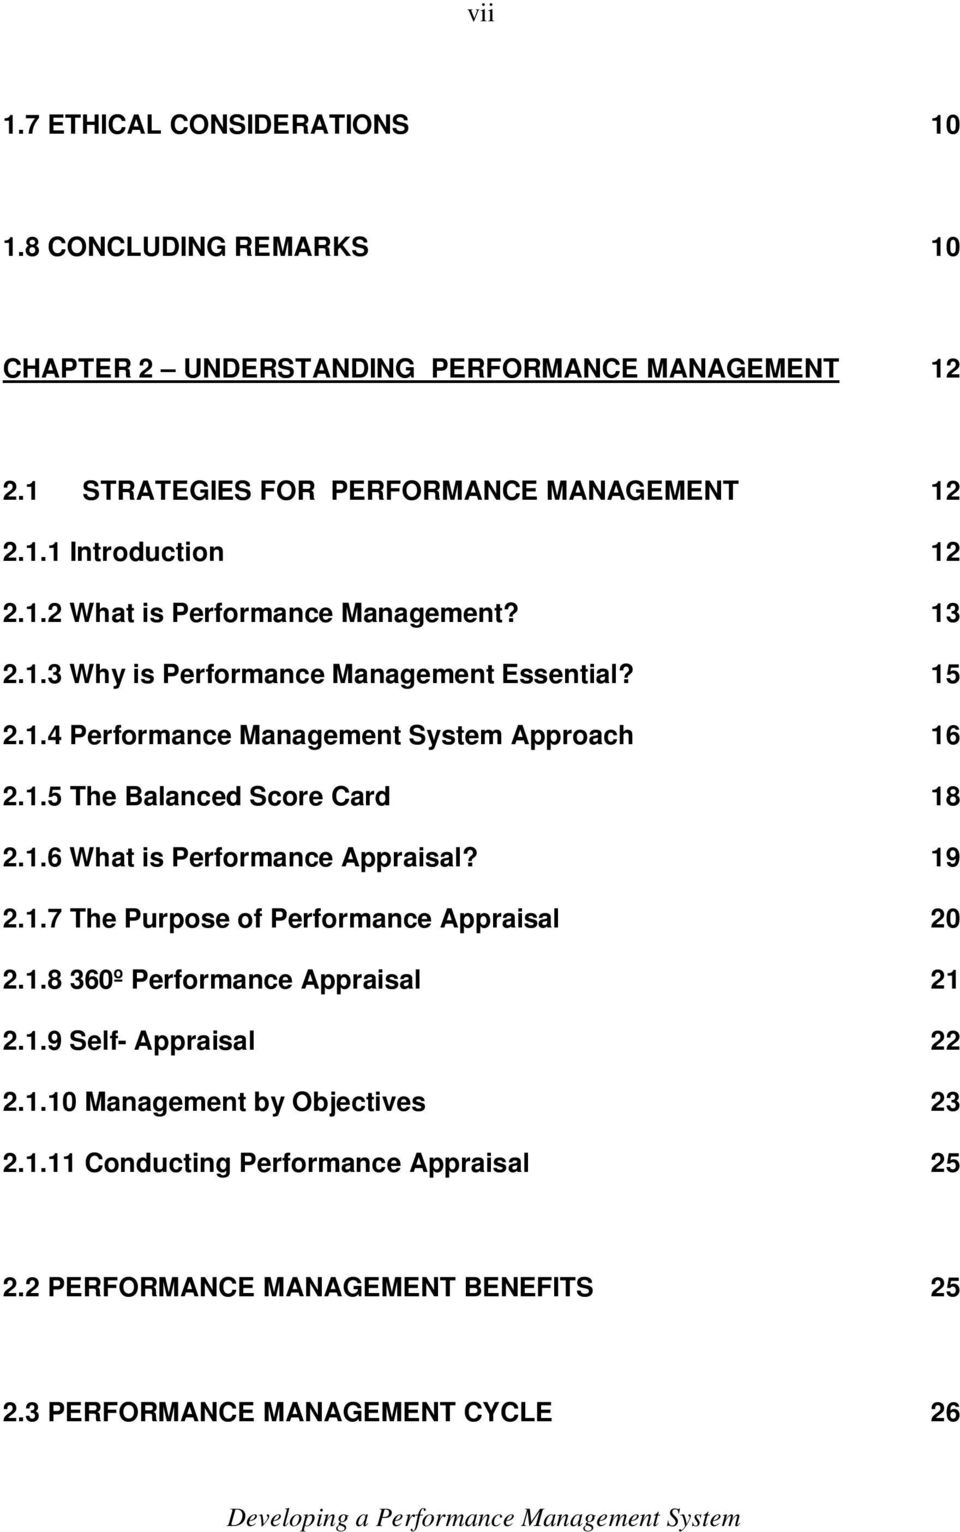 1.6 What is Performance Appraisal? 19 2.1.7 The Purpose of Performance Appraisal 20 2.1.8 360º Performance Appraisal 21 2.1.9 Self- Appraisal 22 2.1.10 Management by Objectives 23 2.